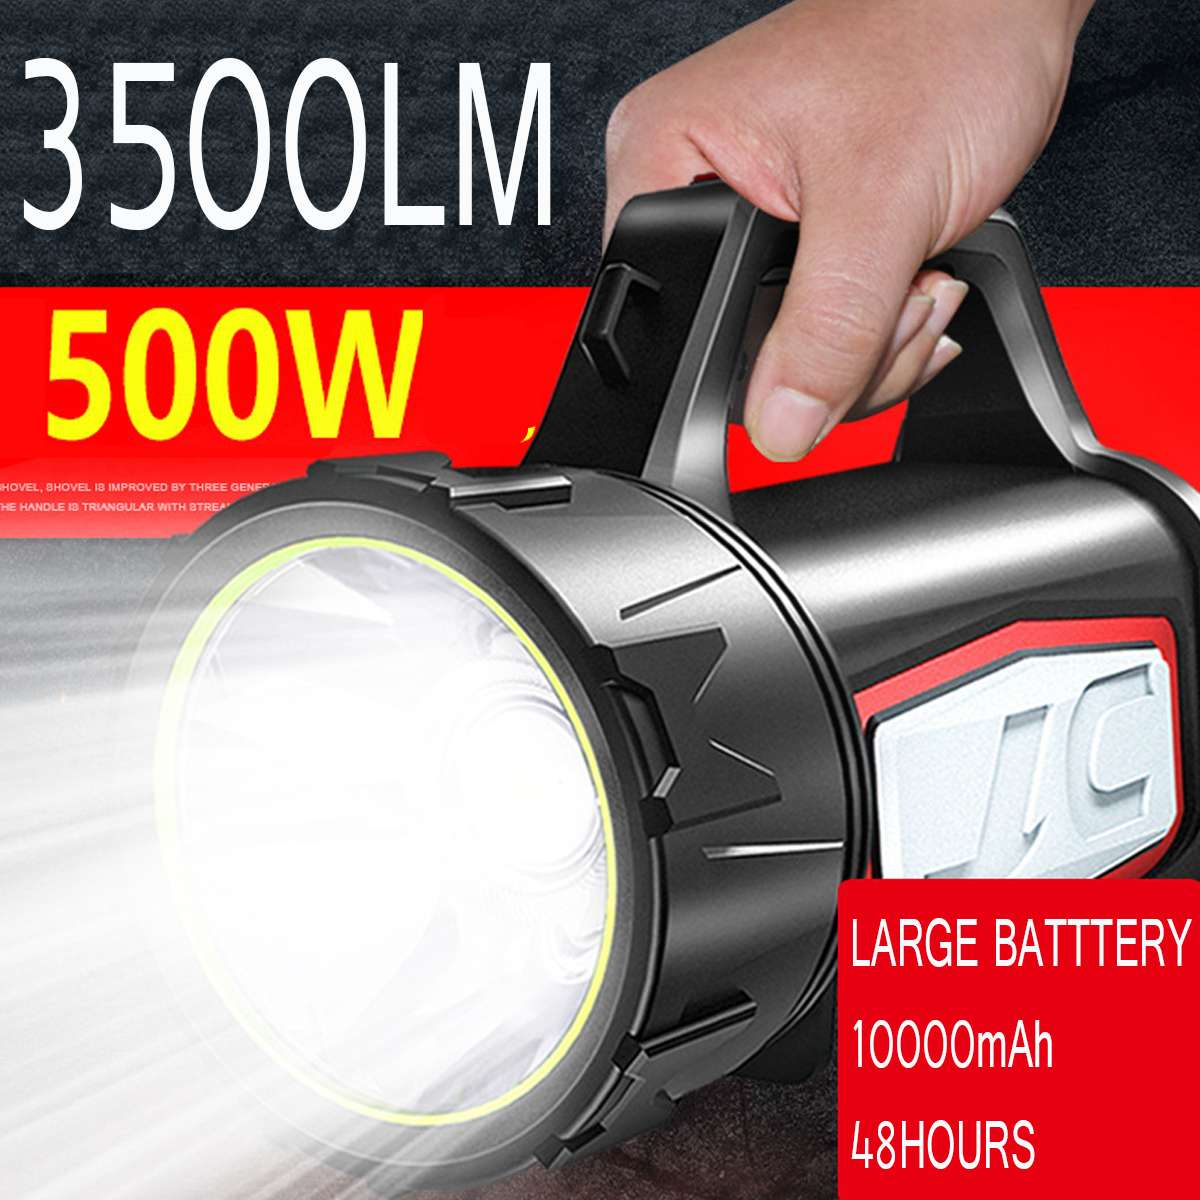 3500LM USB Charging LED Work Light Torch 10000mAh Battery Spotlight Hand Lamp Camping Lantern Searchlight For Hiking Hunting